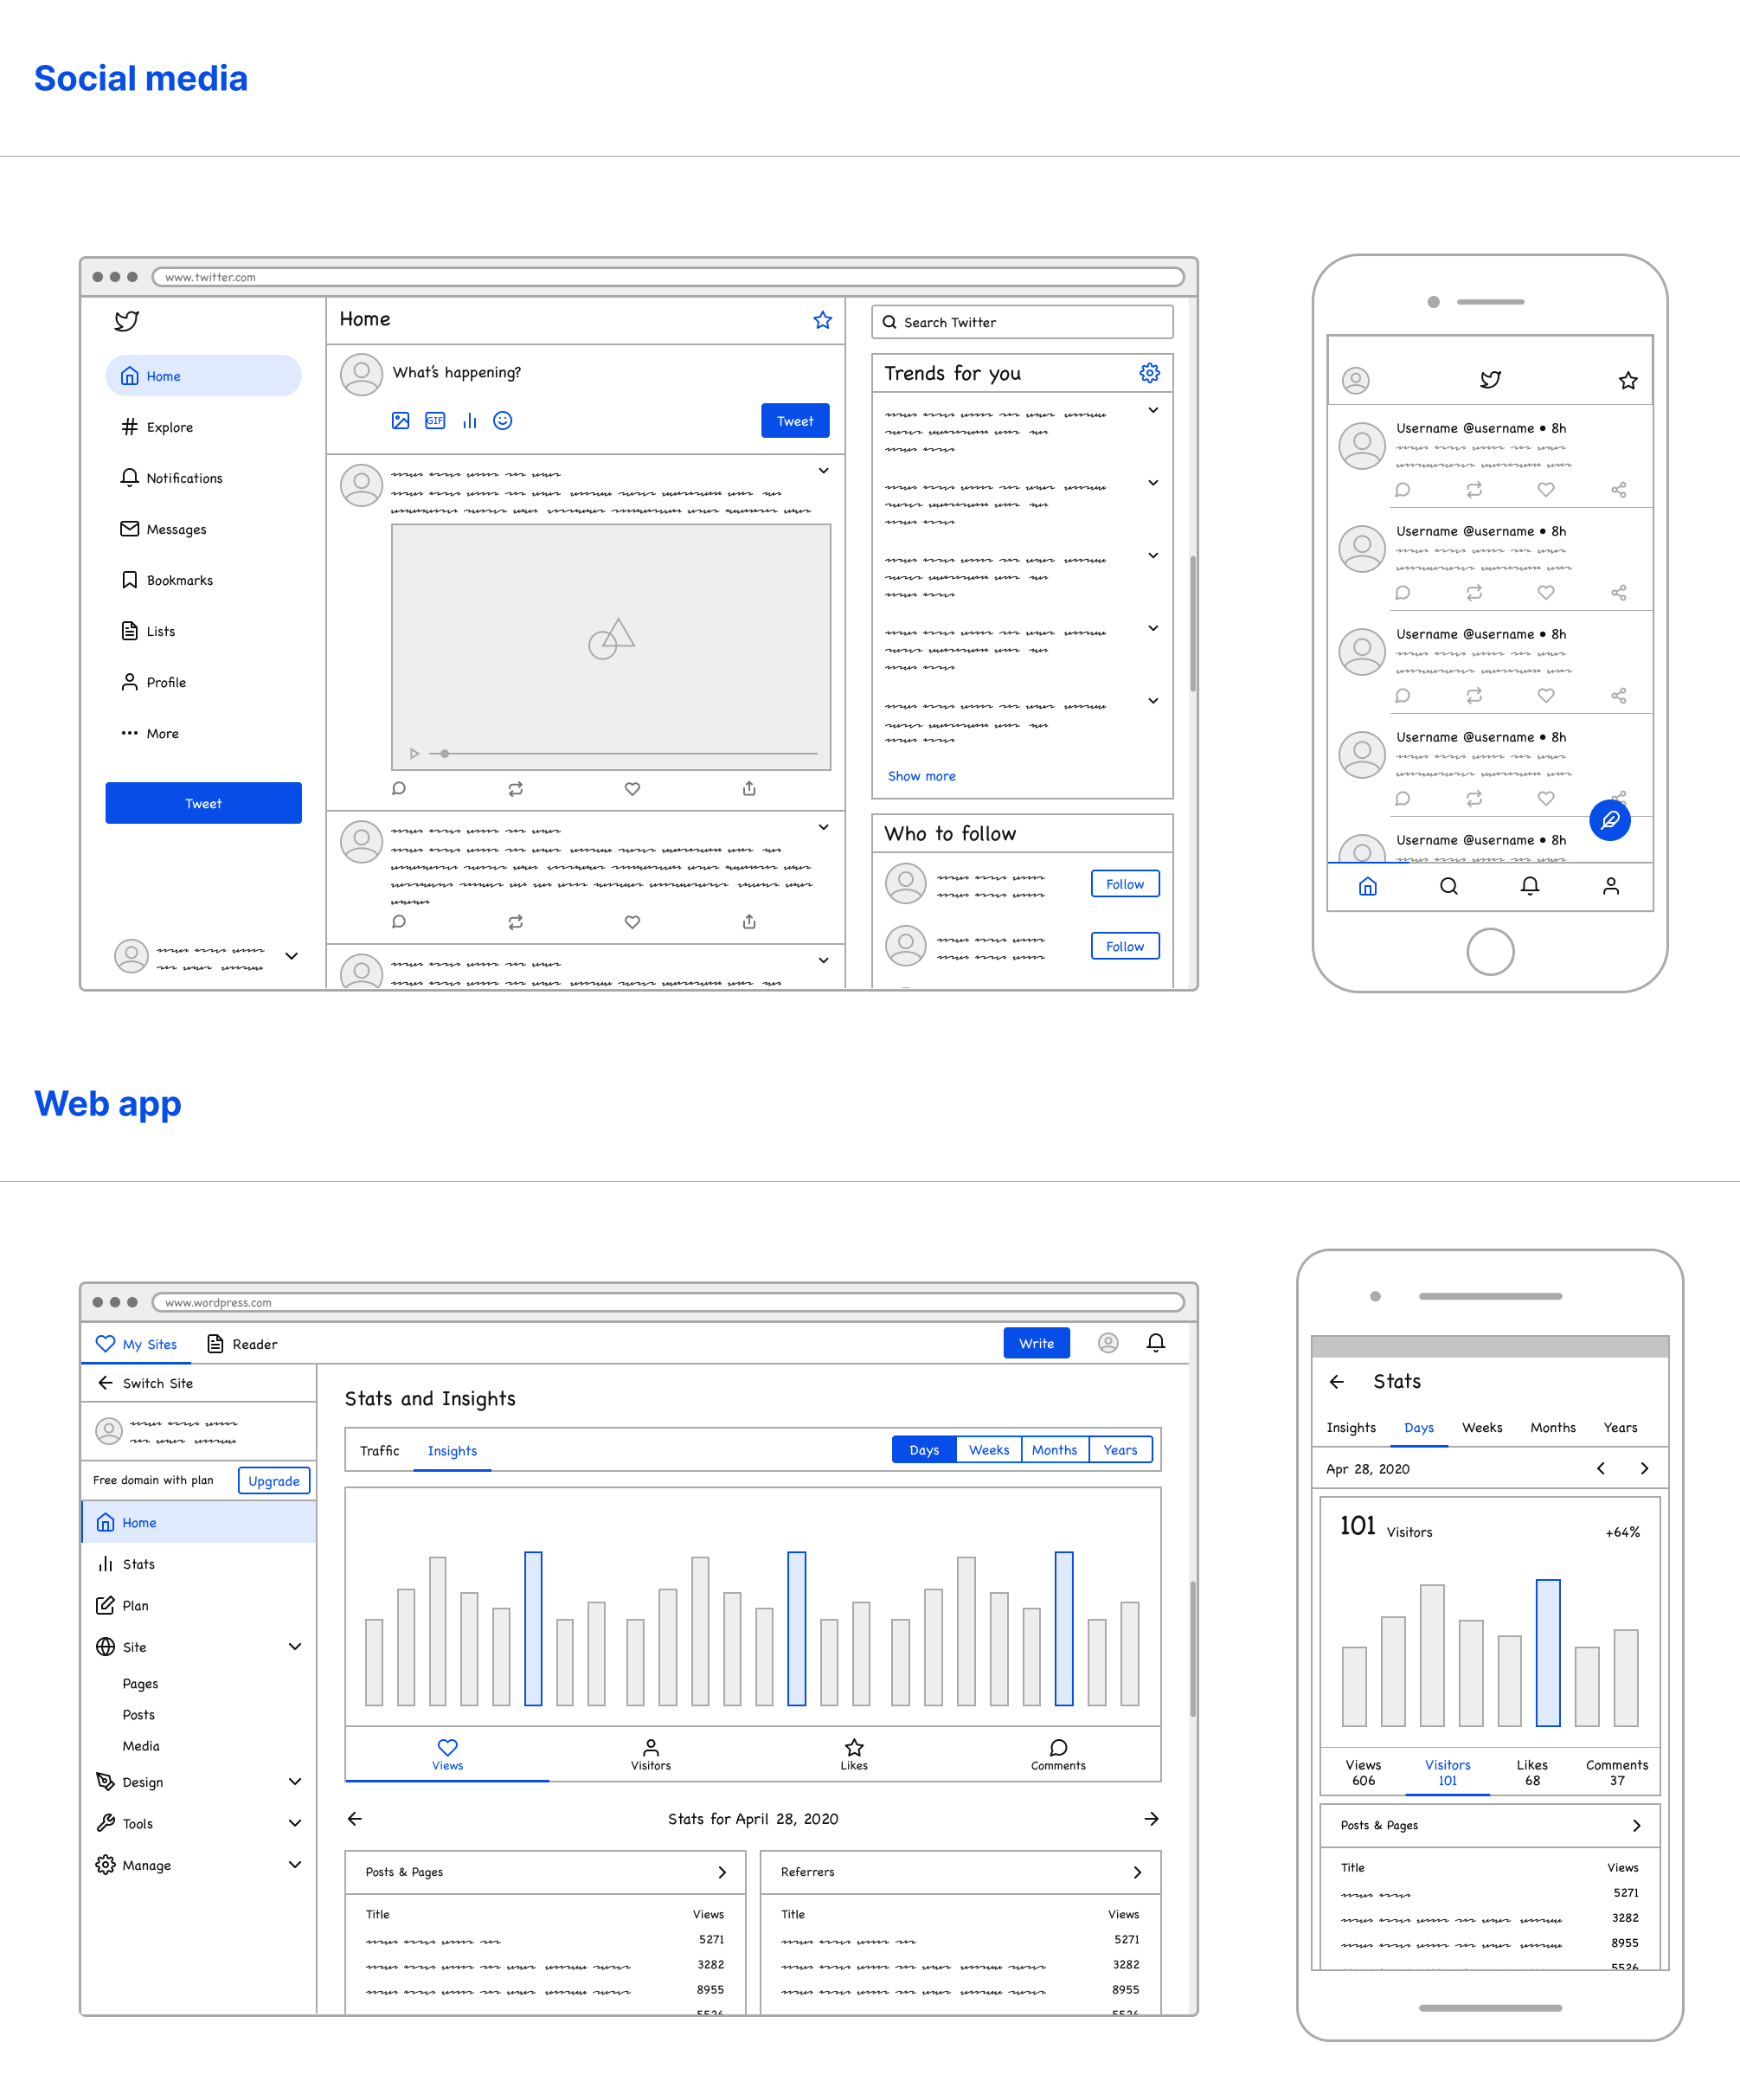 Lo-fi Wireframe Kit - A robust library of over 100 wireframing components that helps you explore more ideas, faster.